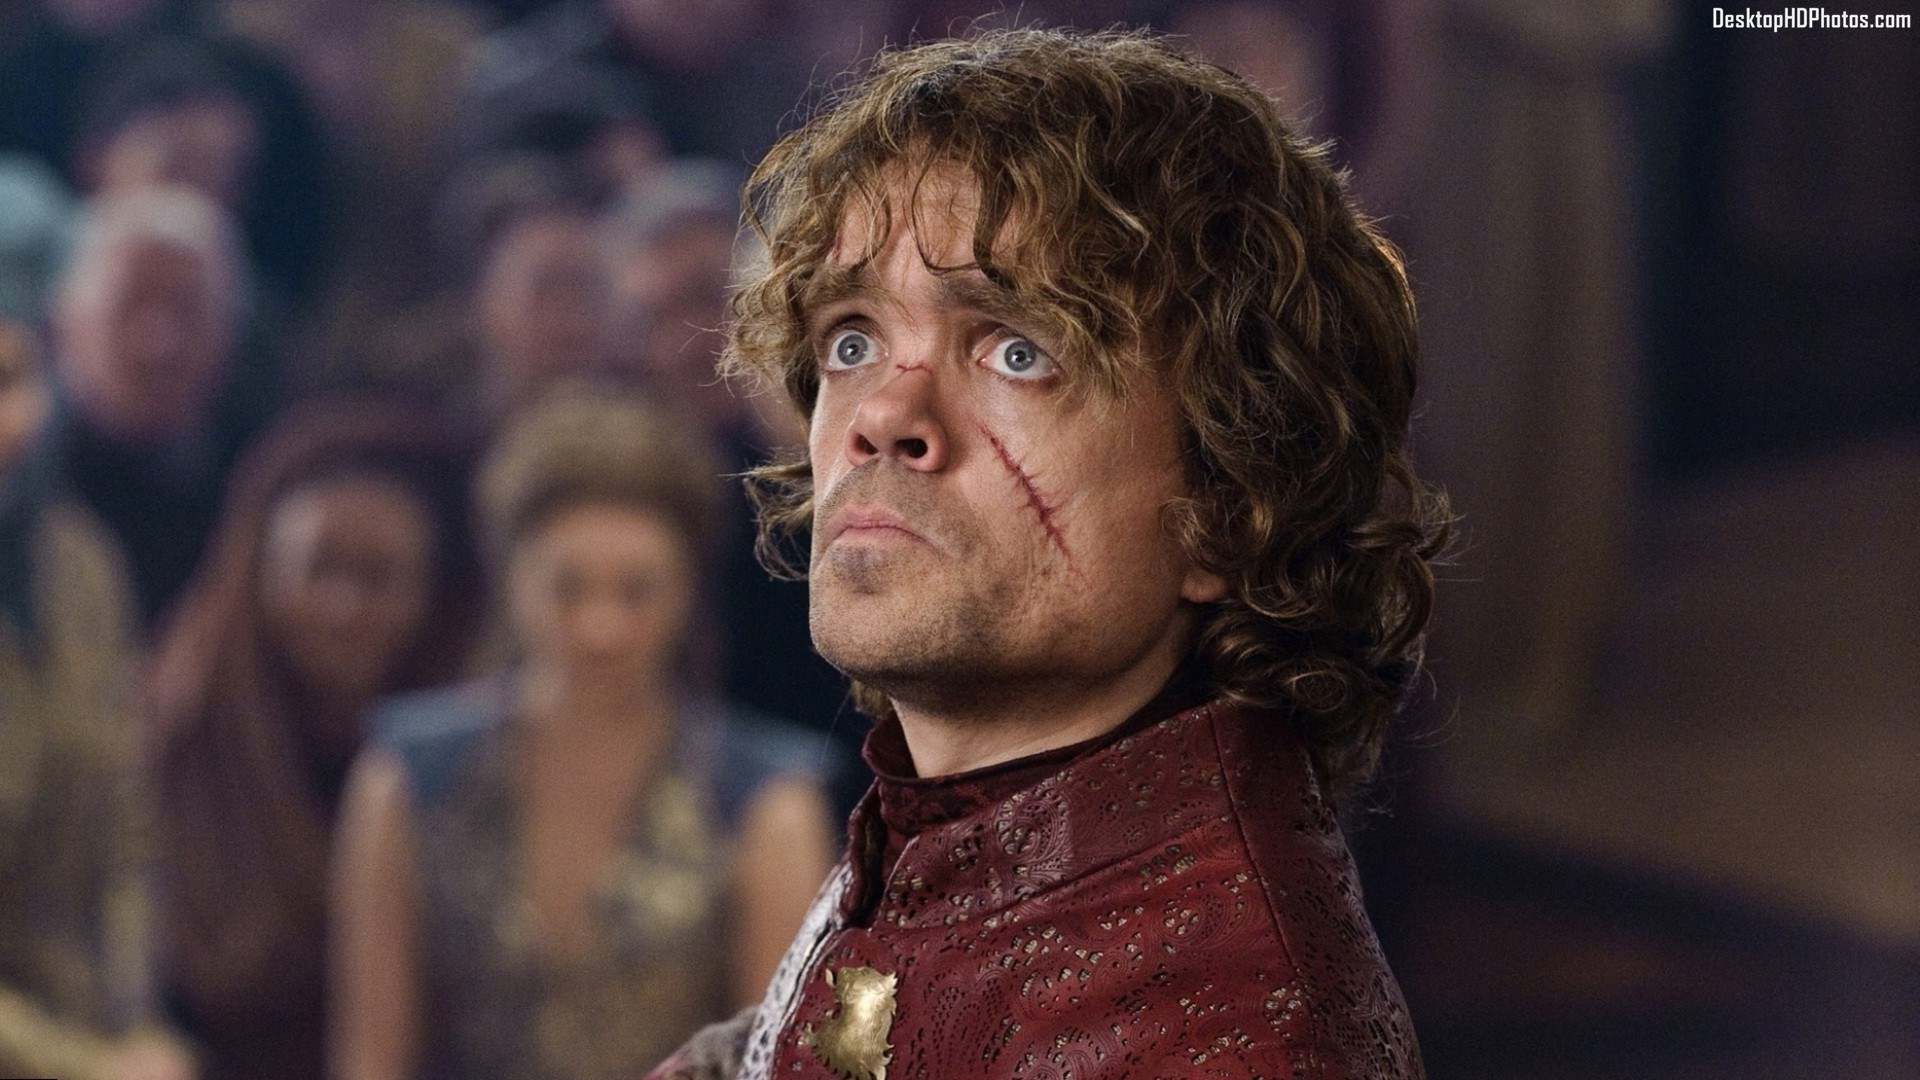 Peter Dinklage In Games Of Thrones 2015